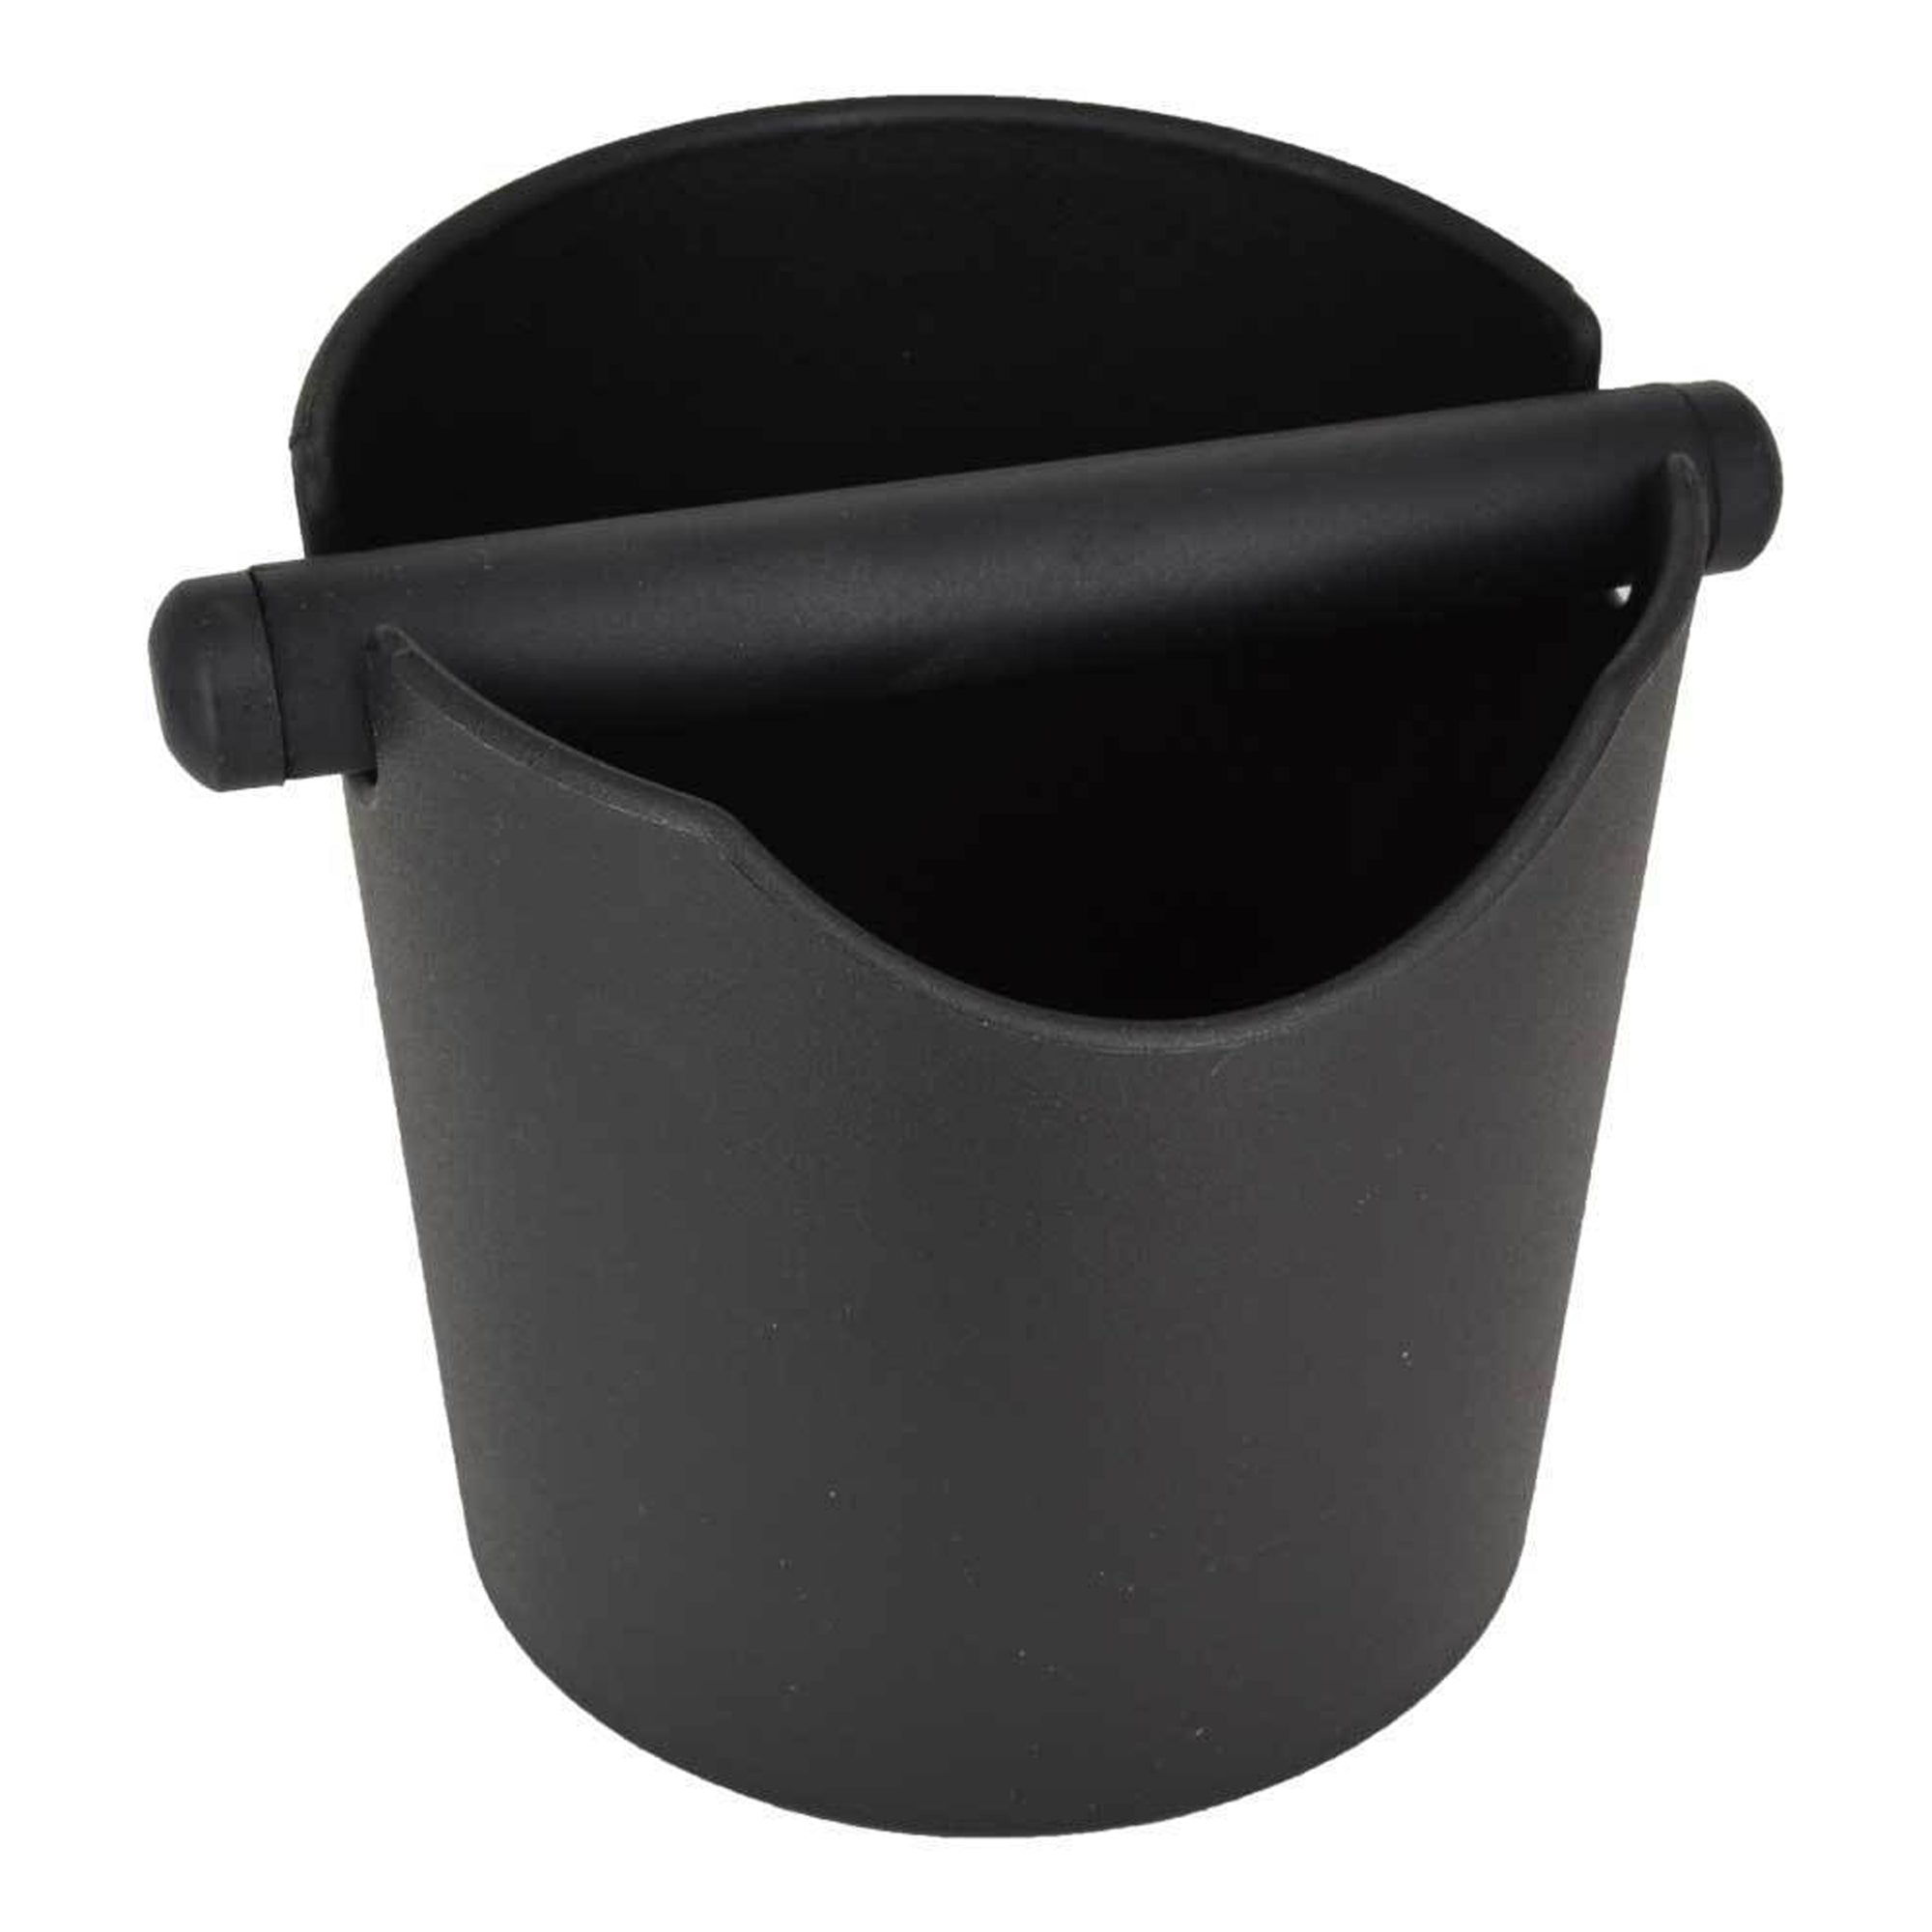 Rhino Black Knockbox - Espresso Gear